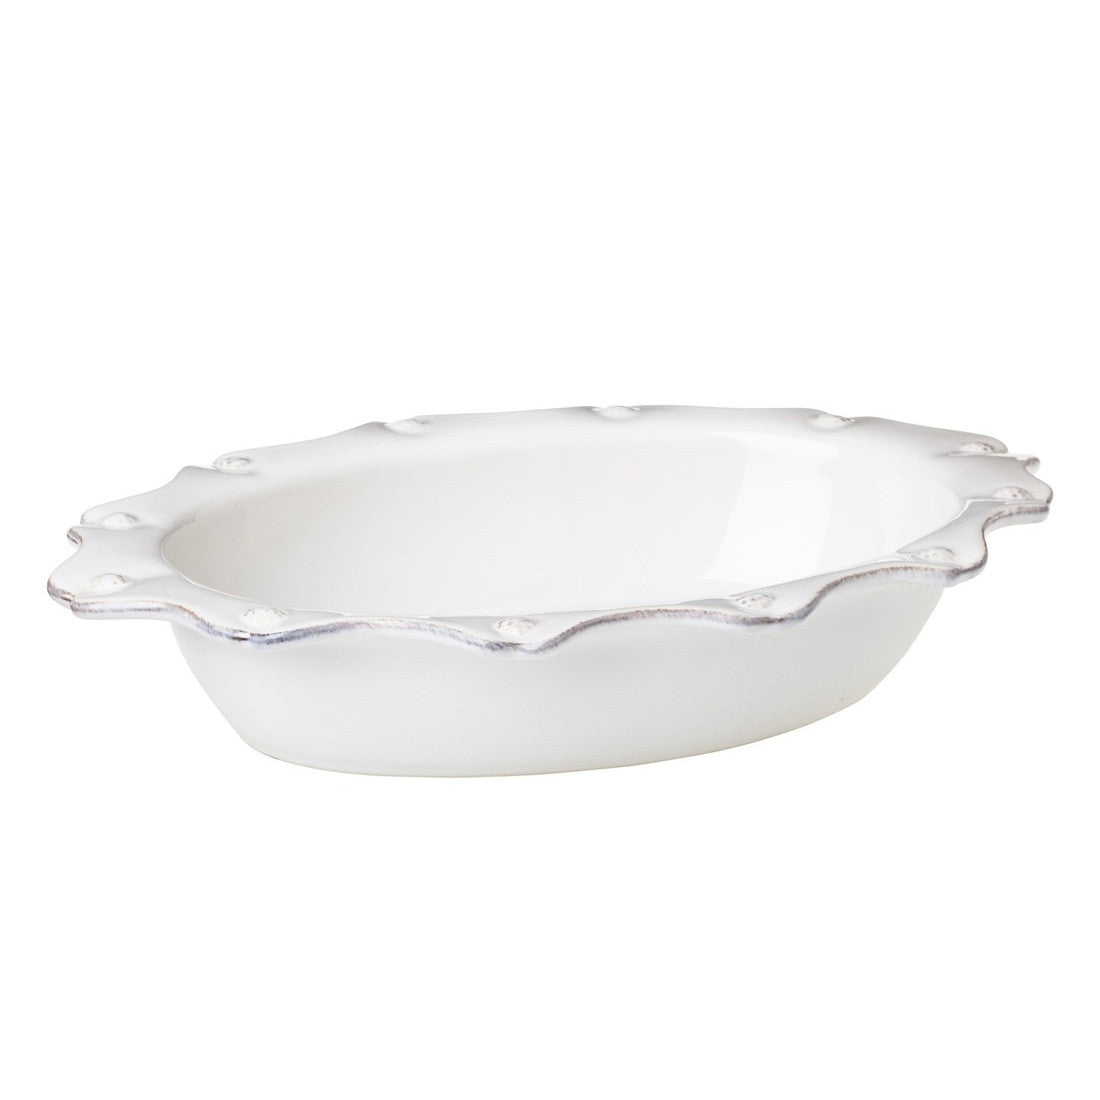 B&T White Small Oval Baking Dish